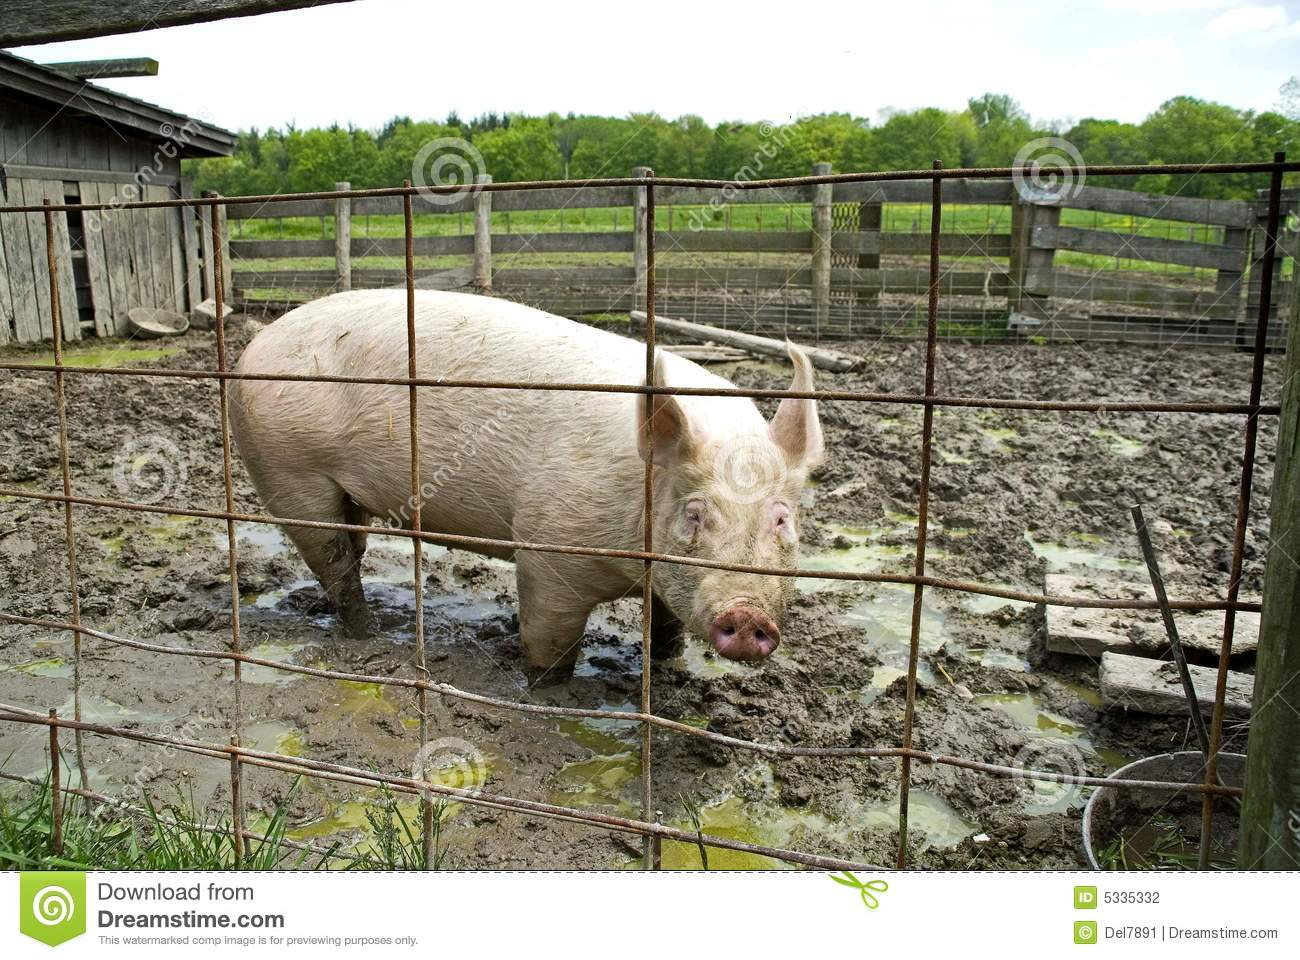 Pig in sty, Bailey farm, dunes state park, Indiana.